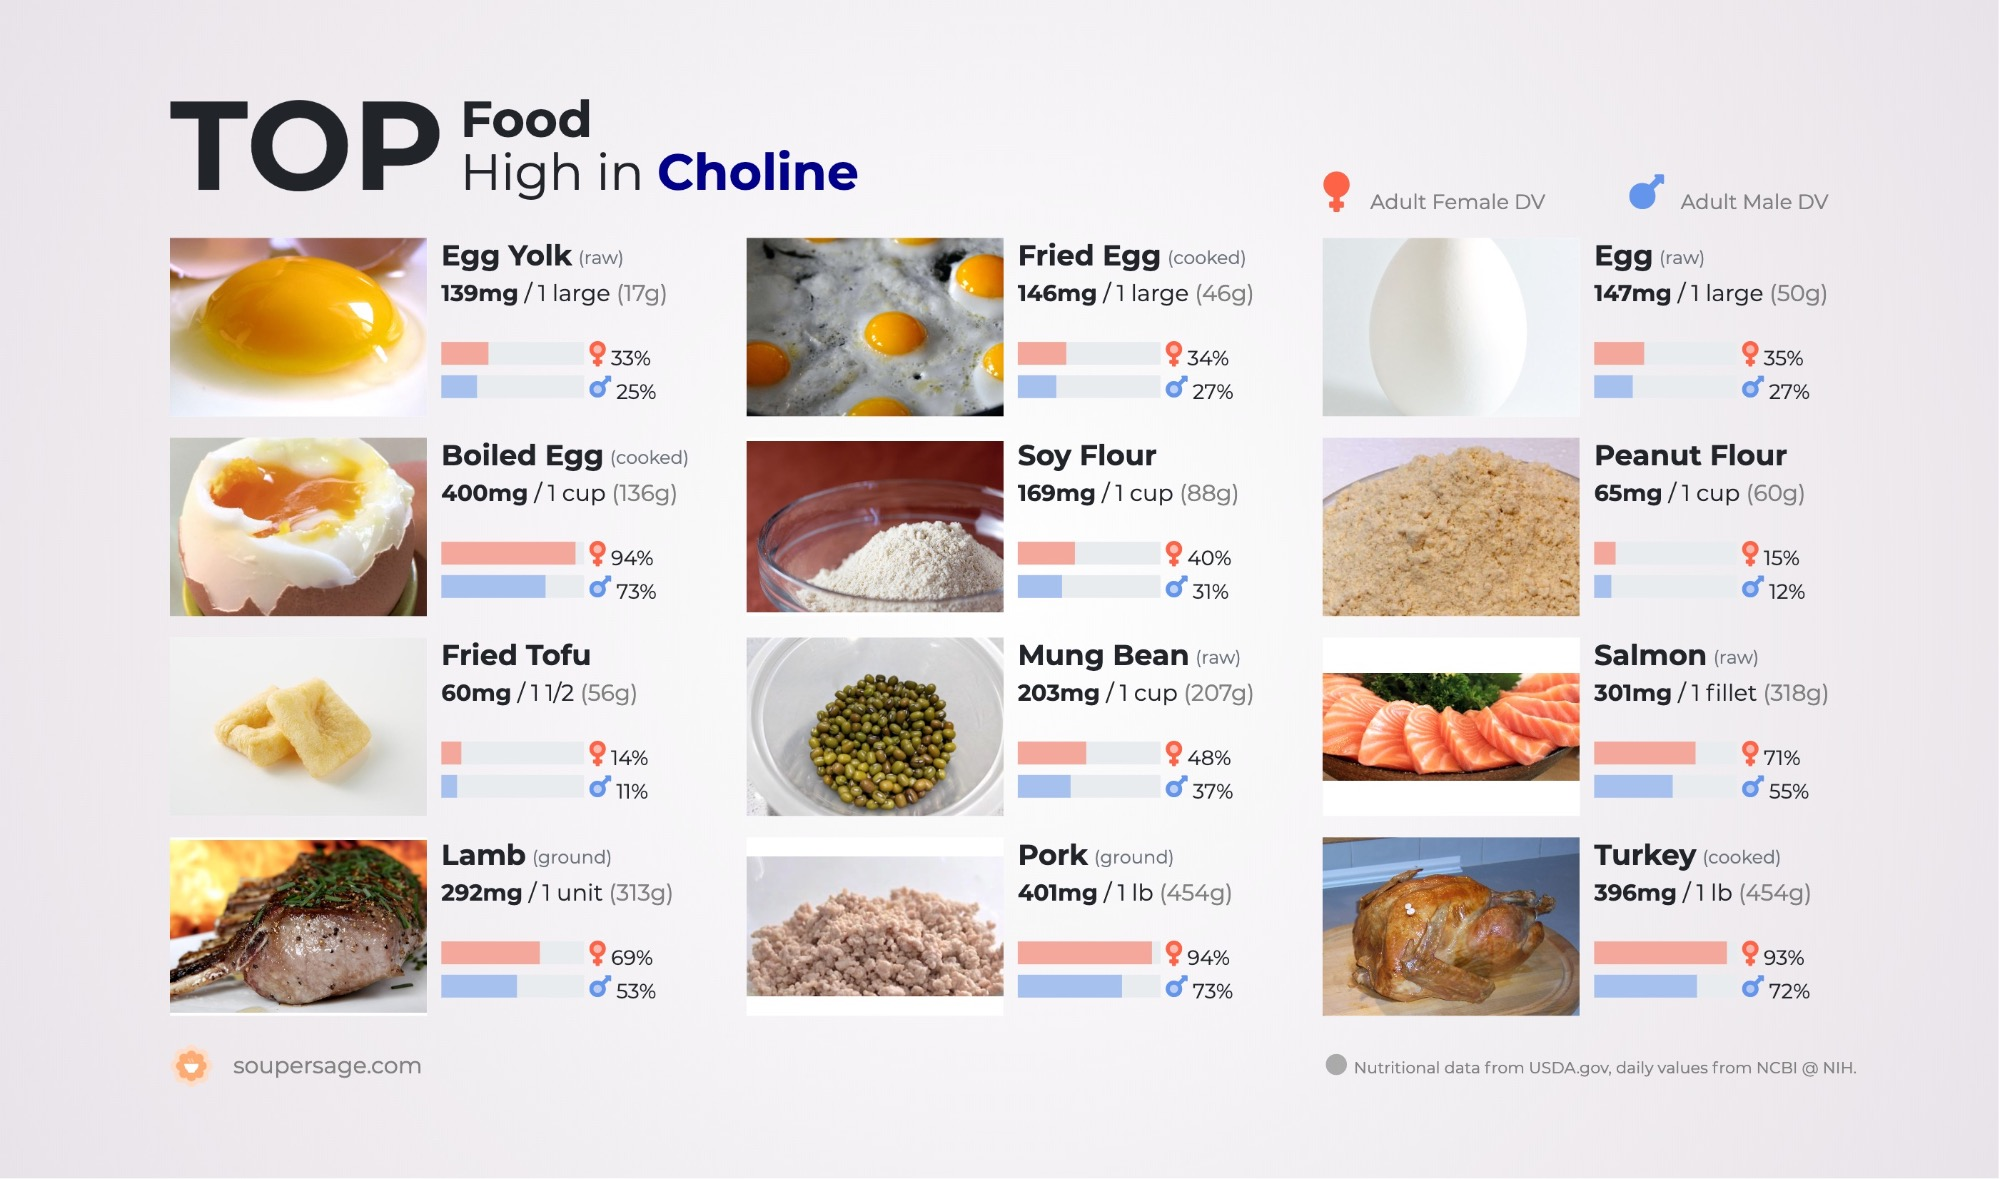 image of Top Food High in Choline